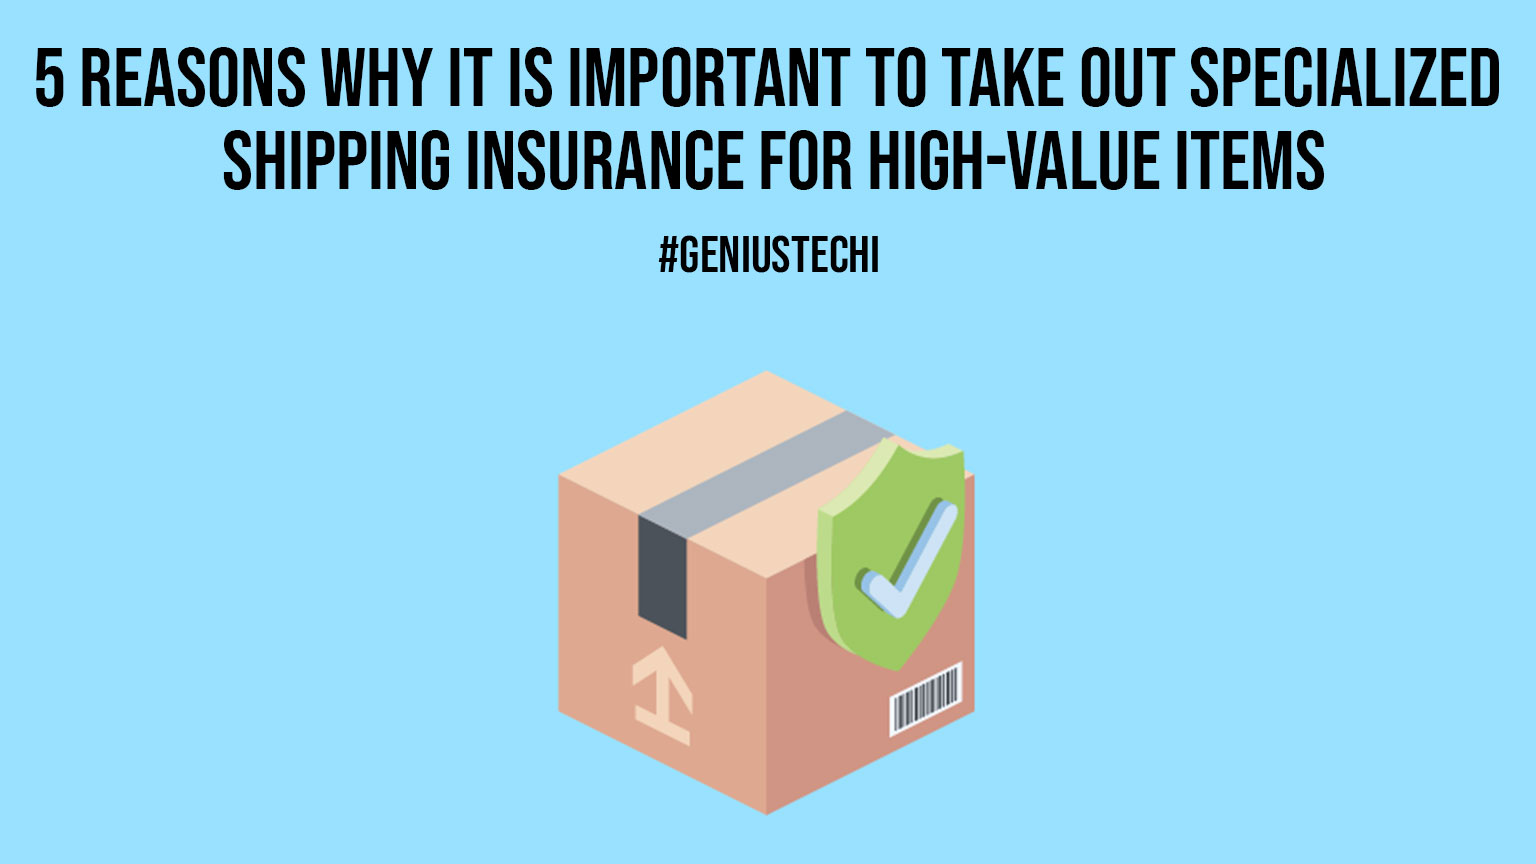 5 Reasons Why It Is Important to Take Out Specialized Shipping Insurance for High Value Items